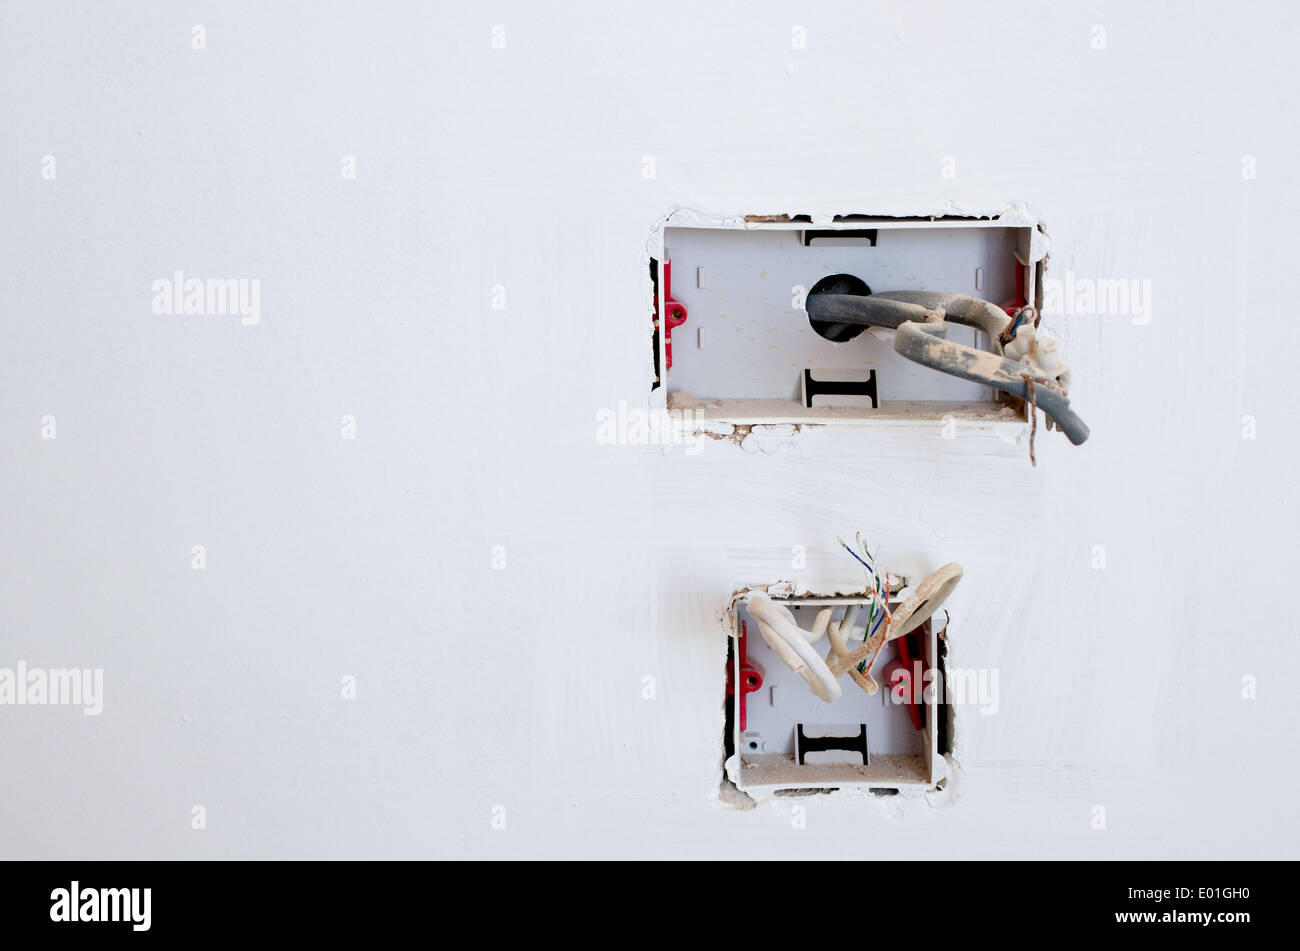 hight resolution of exposed wiring in an unfinished plug socket stock image